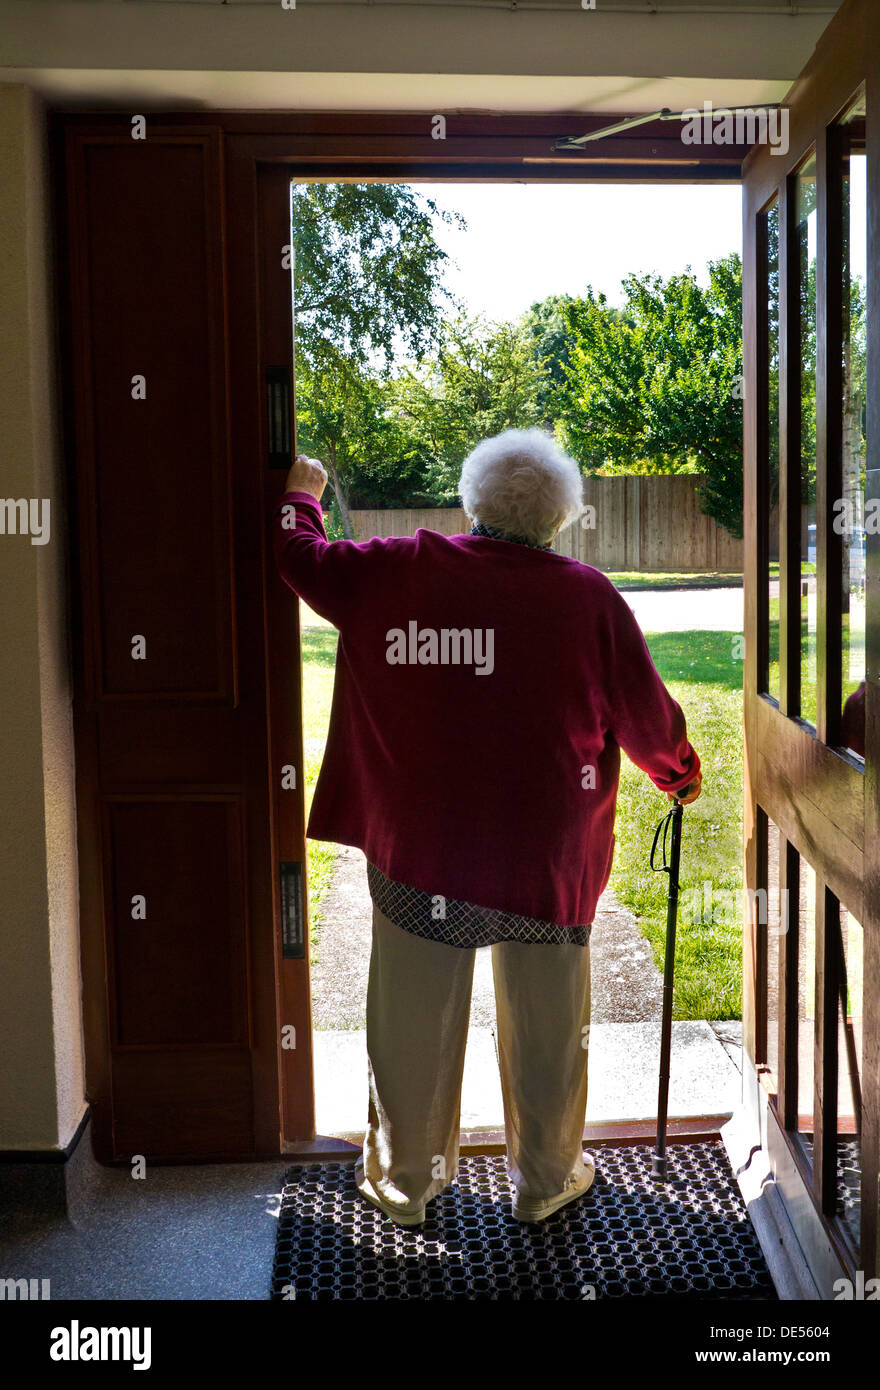 Pensive elderly senior old age lady standing alone with walking stick pauses at her open front door - Stock Image